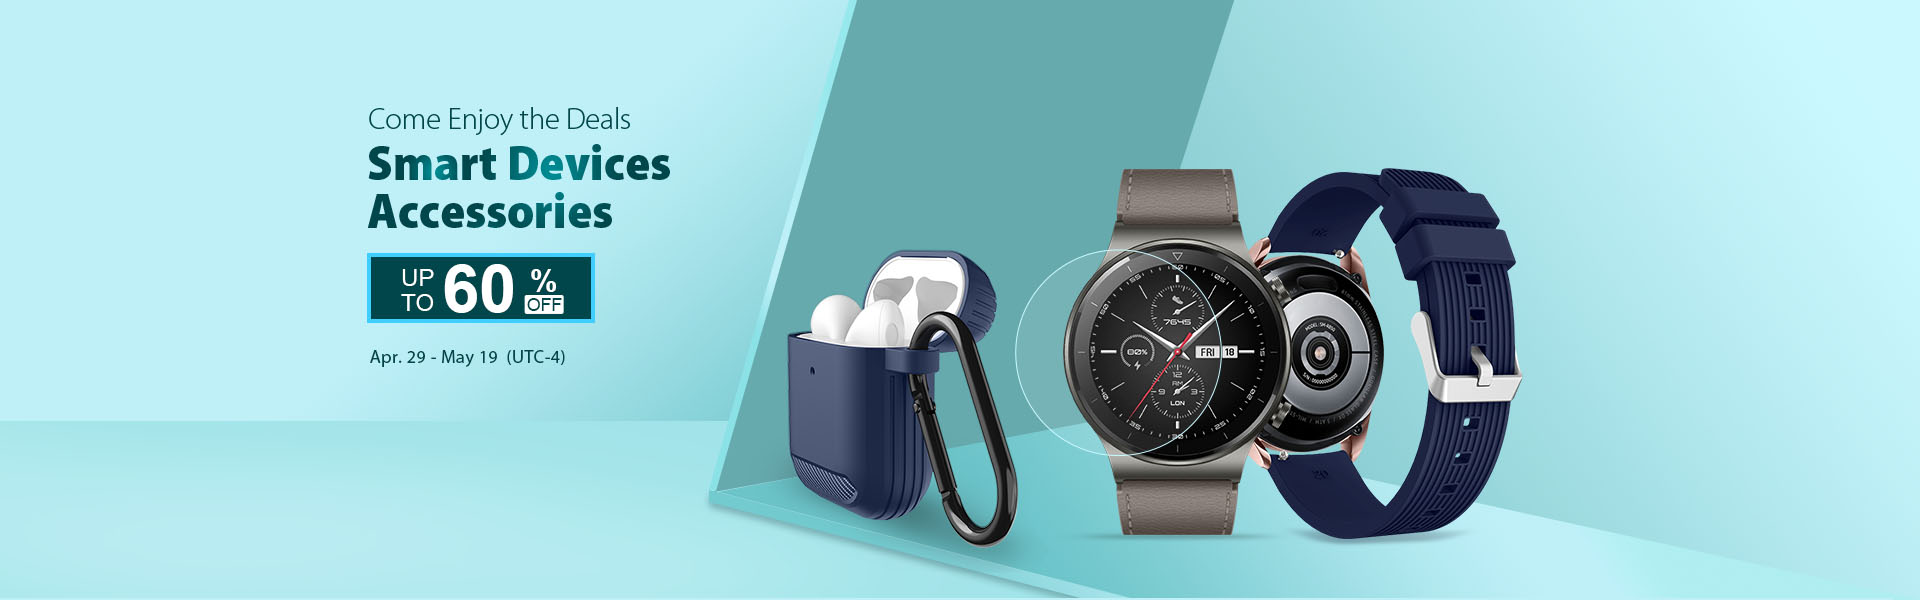 Up to 60% off on Smart Devices Accessories